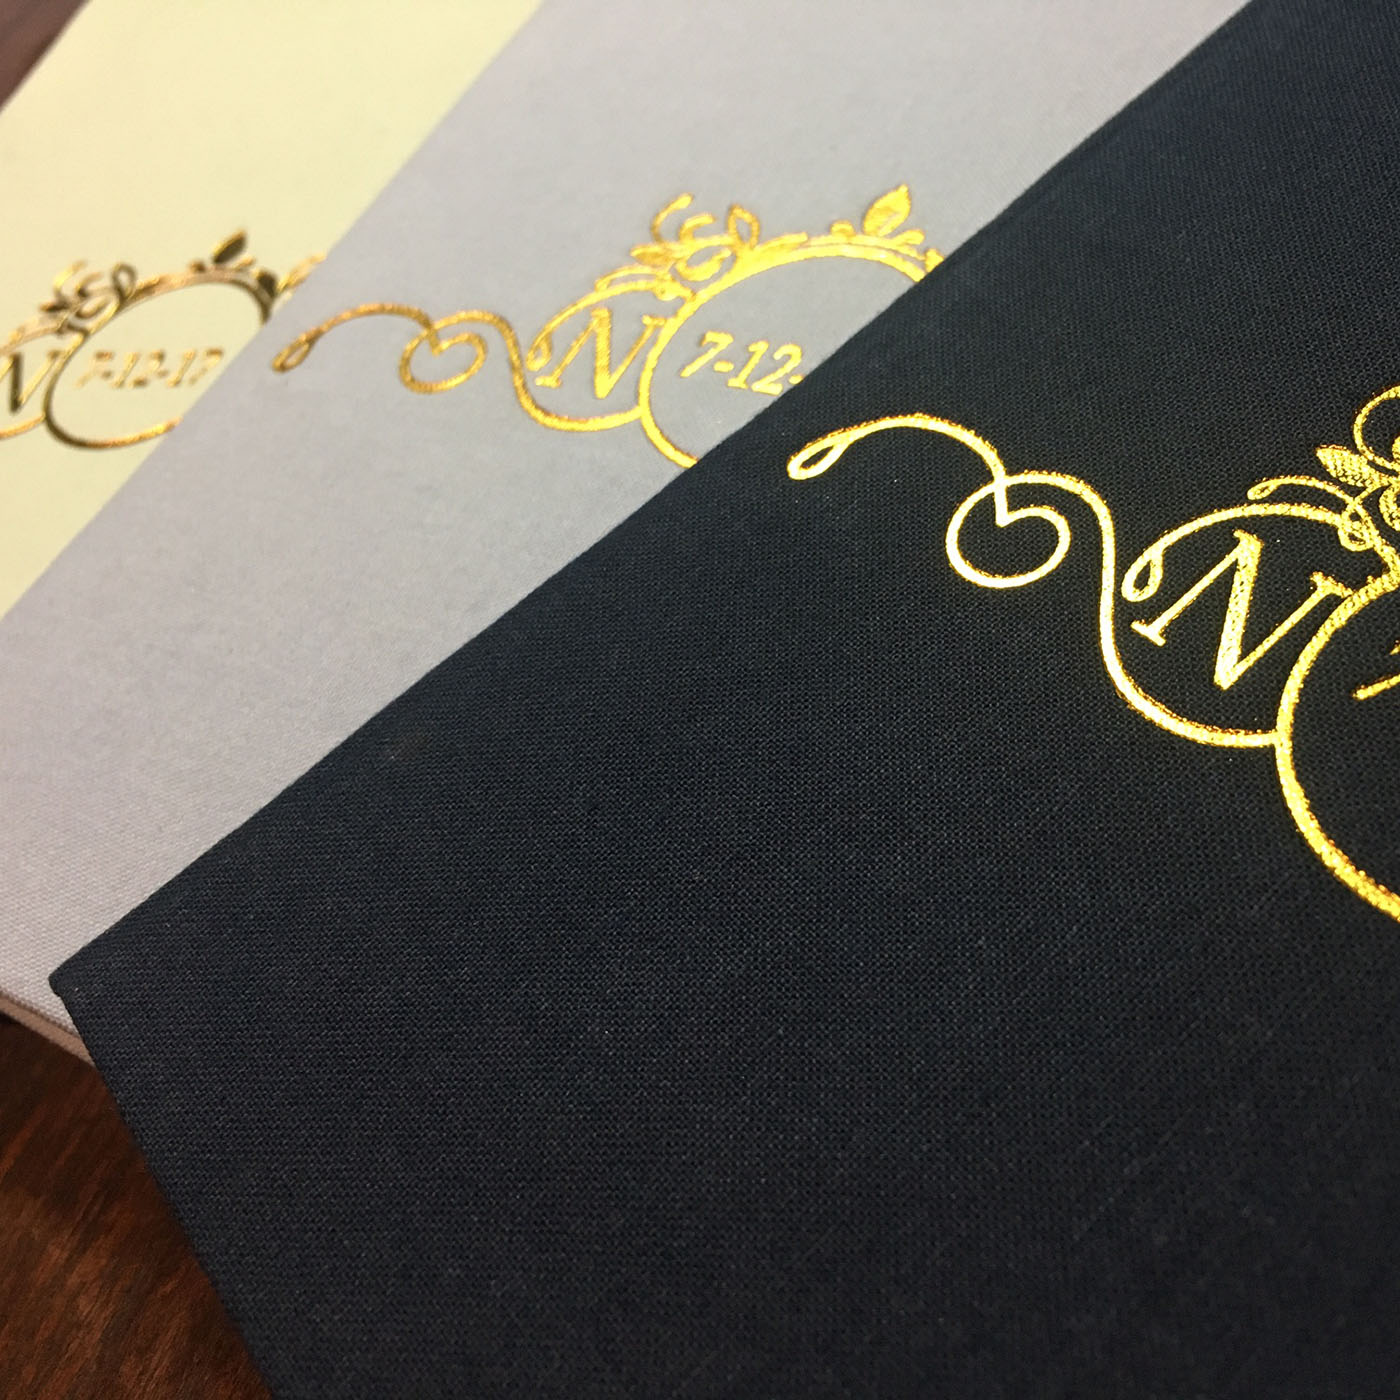 Foil stamped invitations